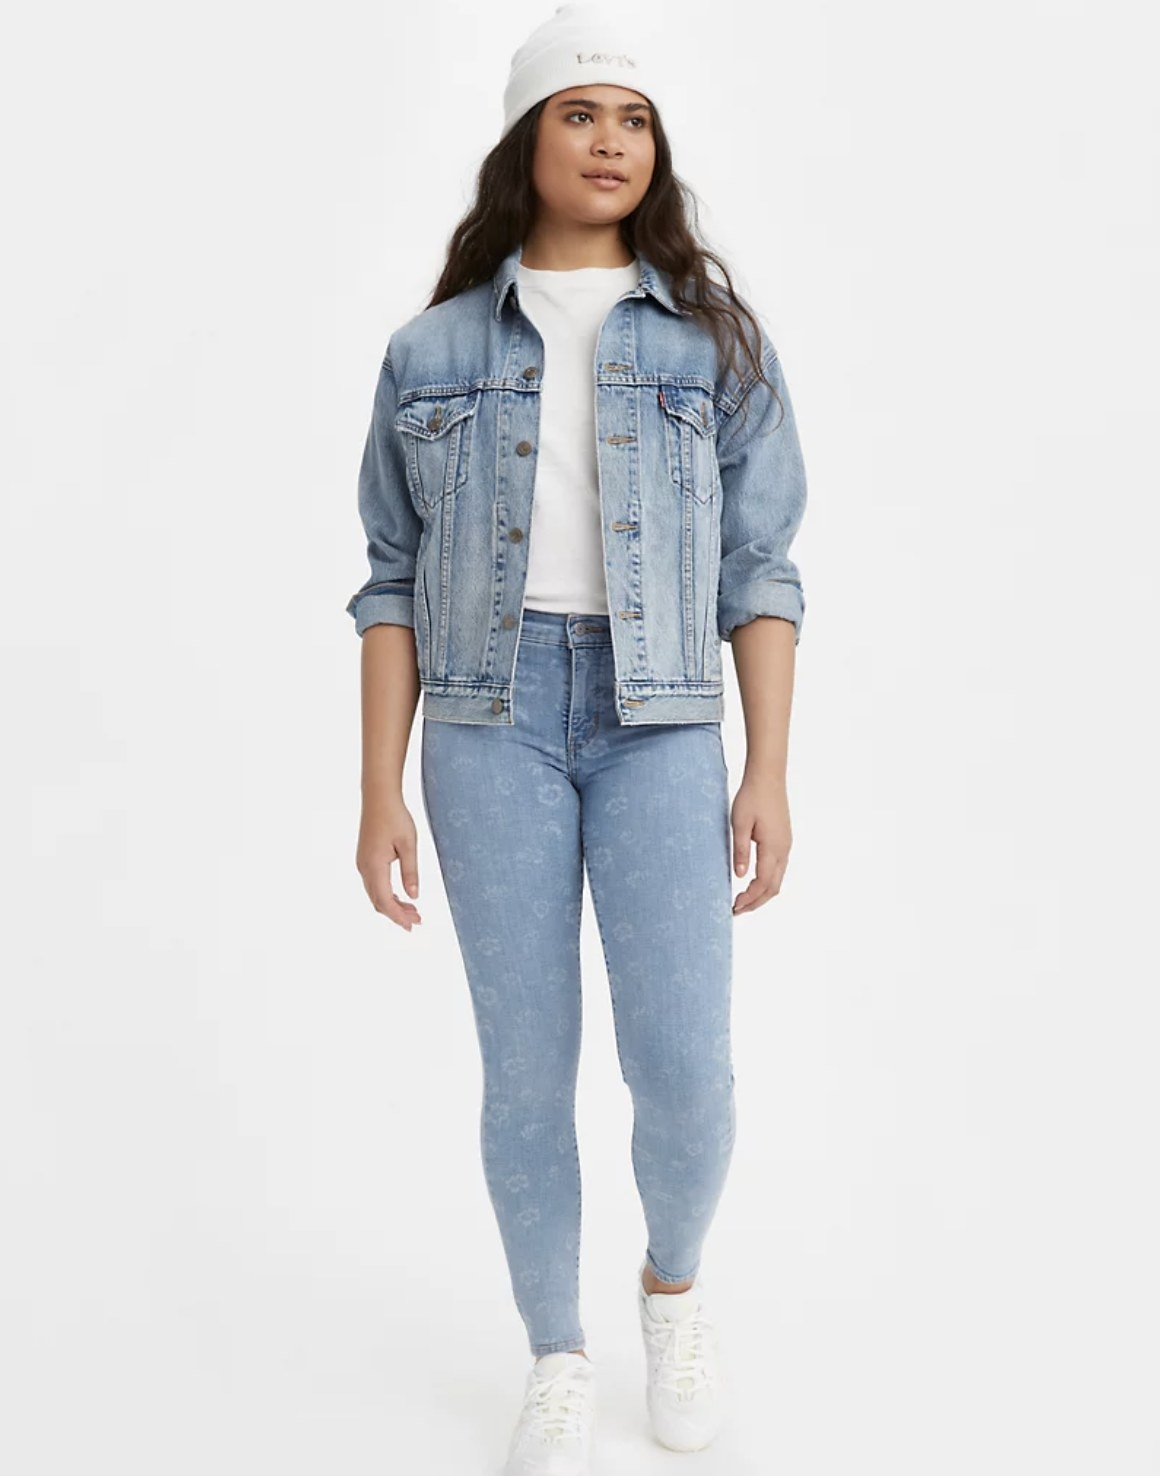 Model is wearing light skinny jeans, a top, and a denim jacket